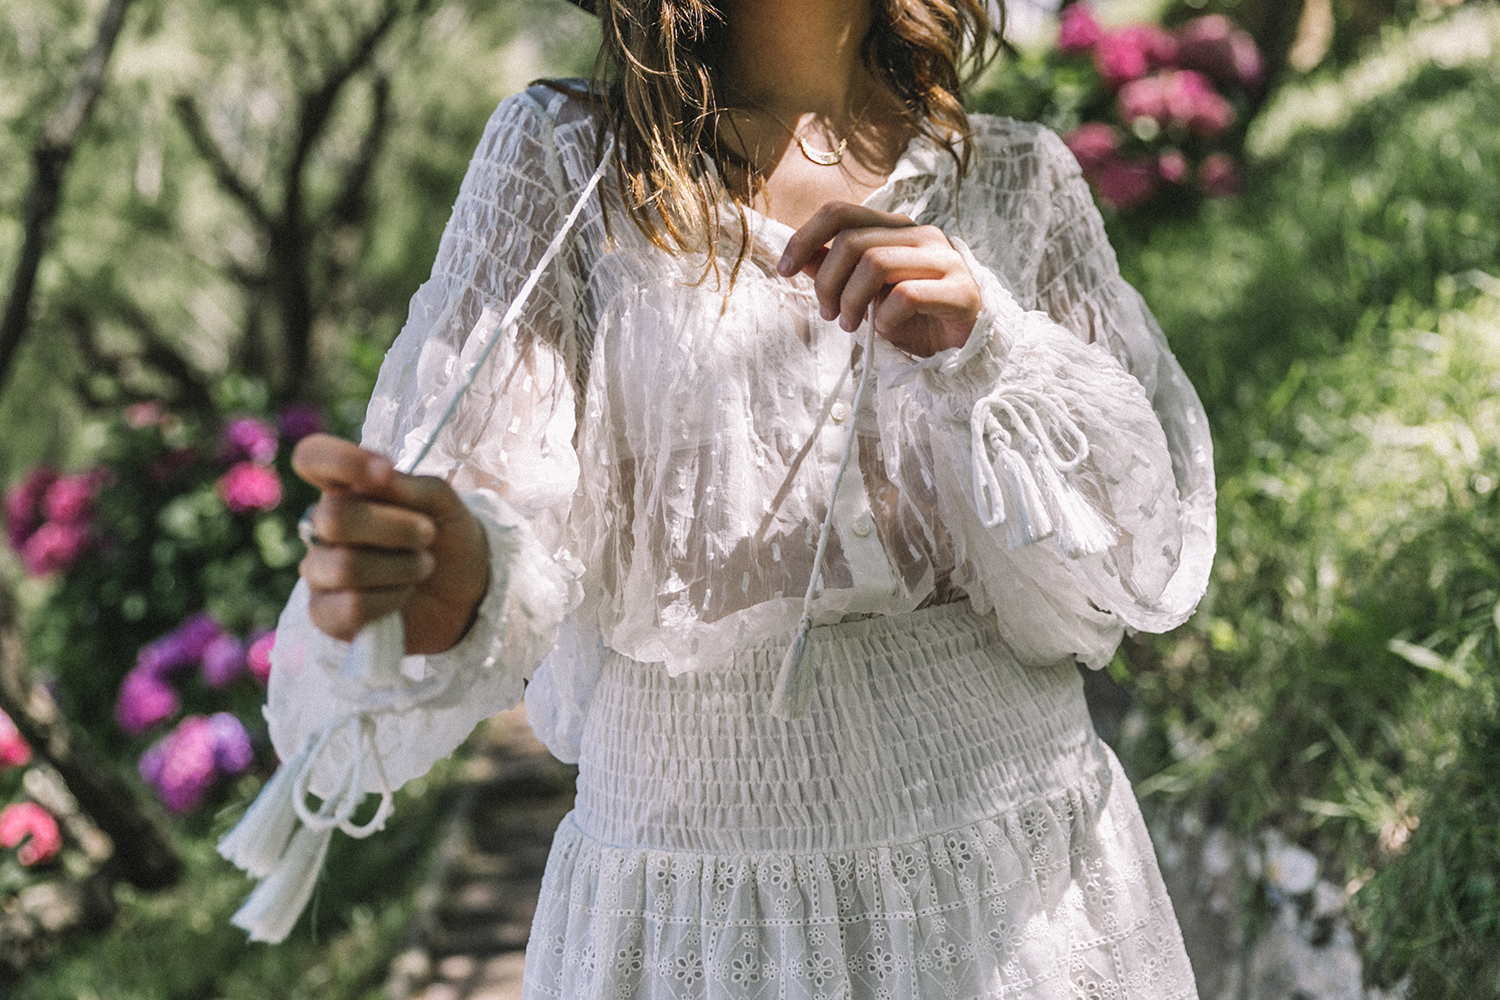 White_Outfit-Denim_Jacket-Lack_Of_Color_Hat-Outfit-Biarritz-Levis-Live_In_Levis-Street_Style-Summer-Boho_Skirt-Collage_Vintage-17